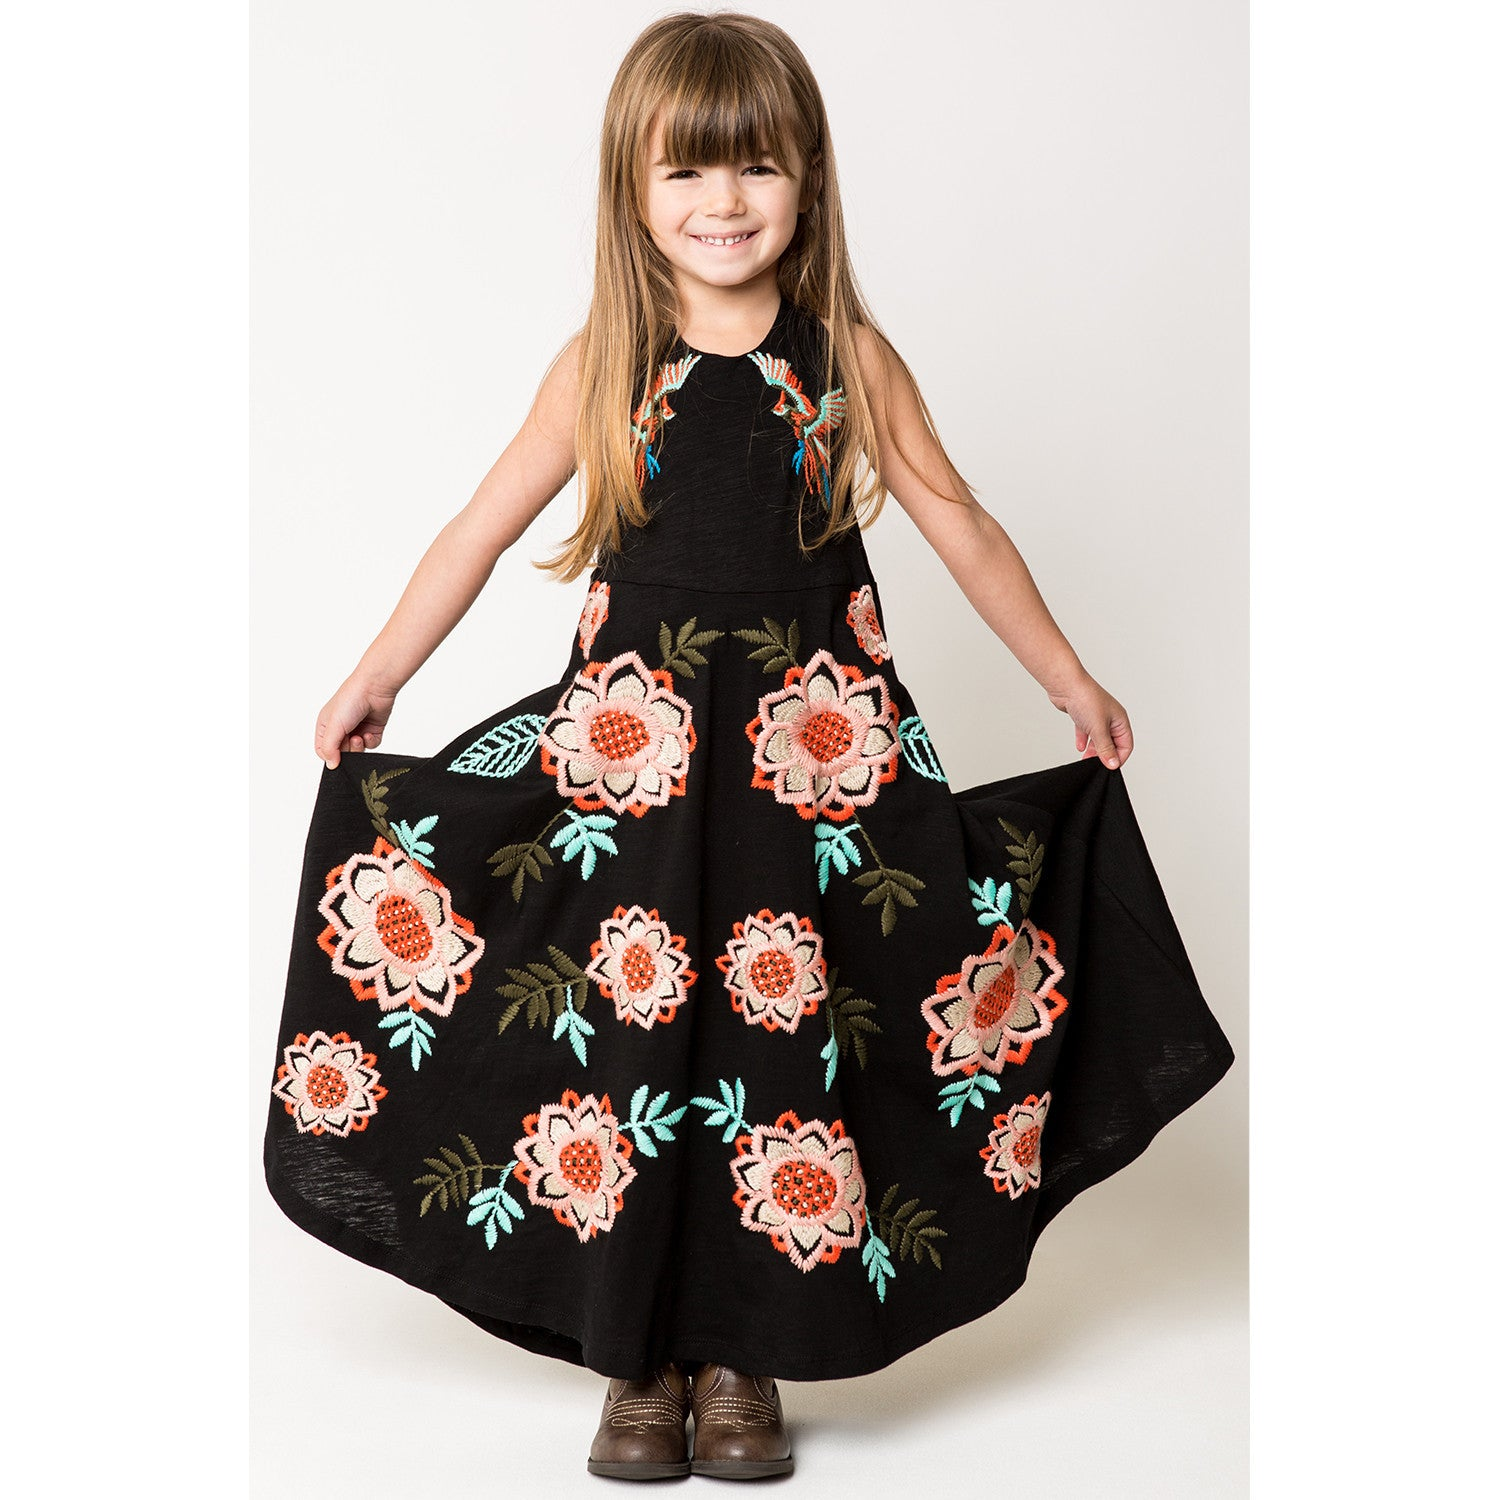 8badbee04a94 Bird + Floral Embroidery Halter Maxi Dress for Girls – illustrated ...